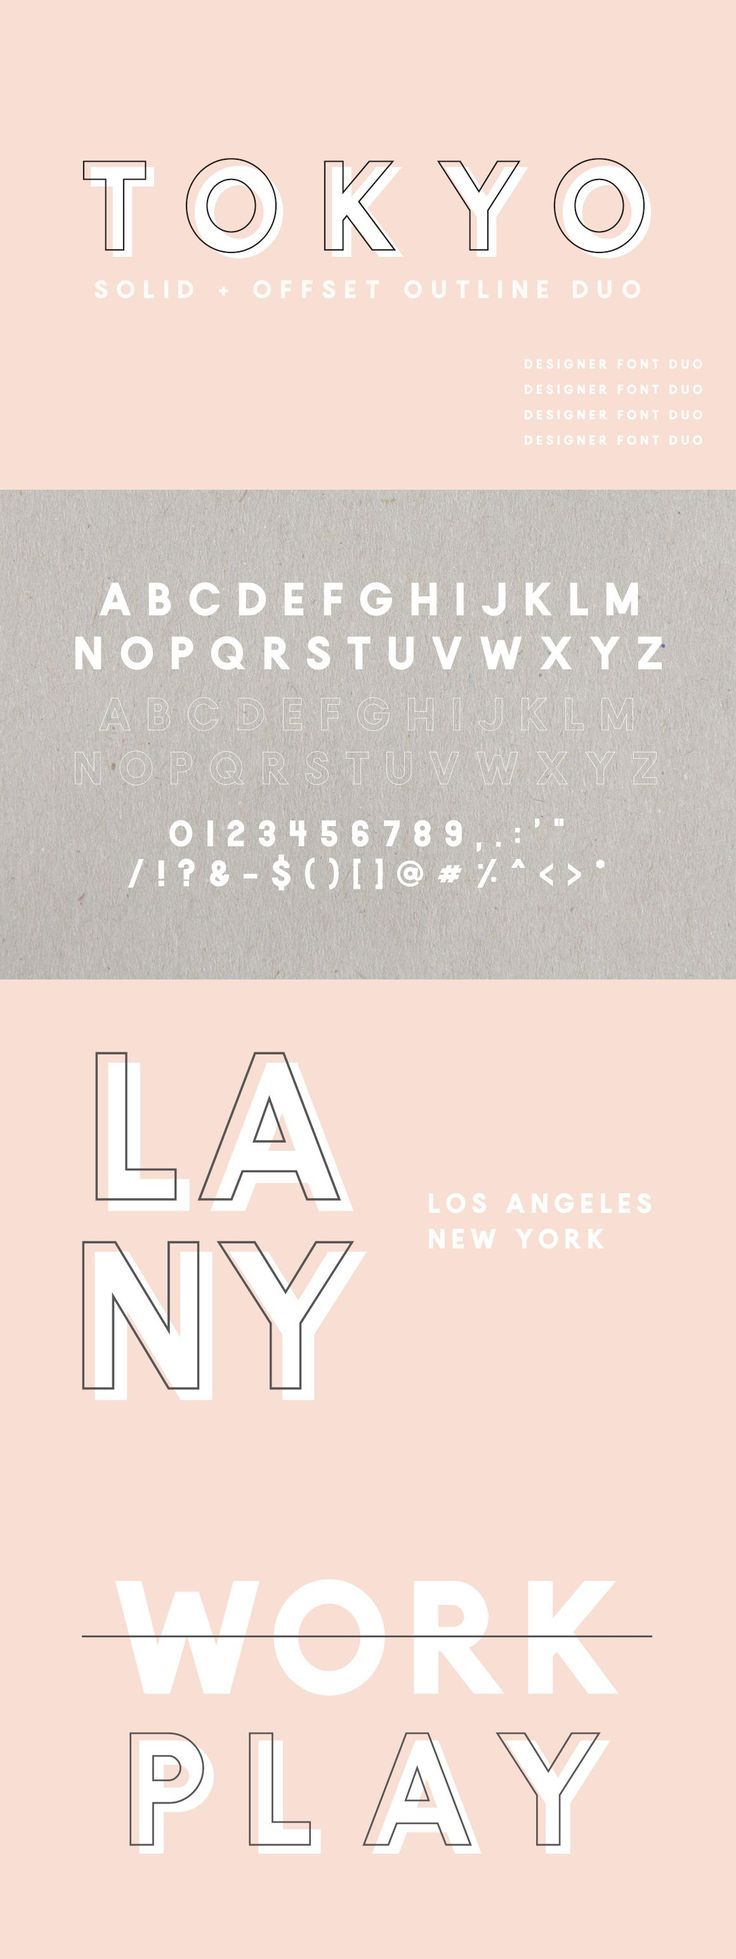 Tokyo | A Designer Font Duo | Font Pairings | Typography